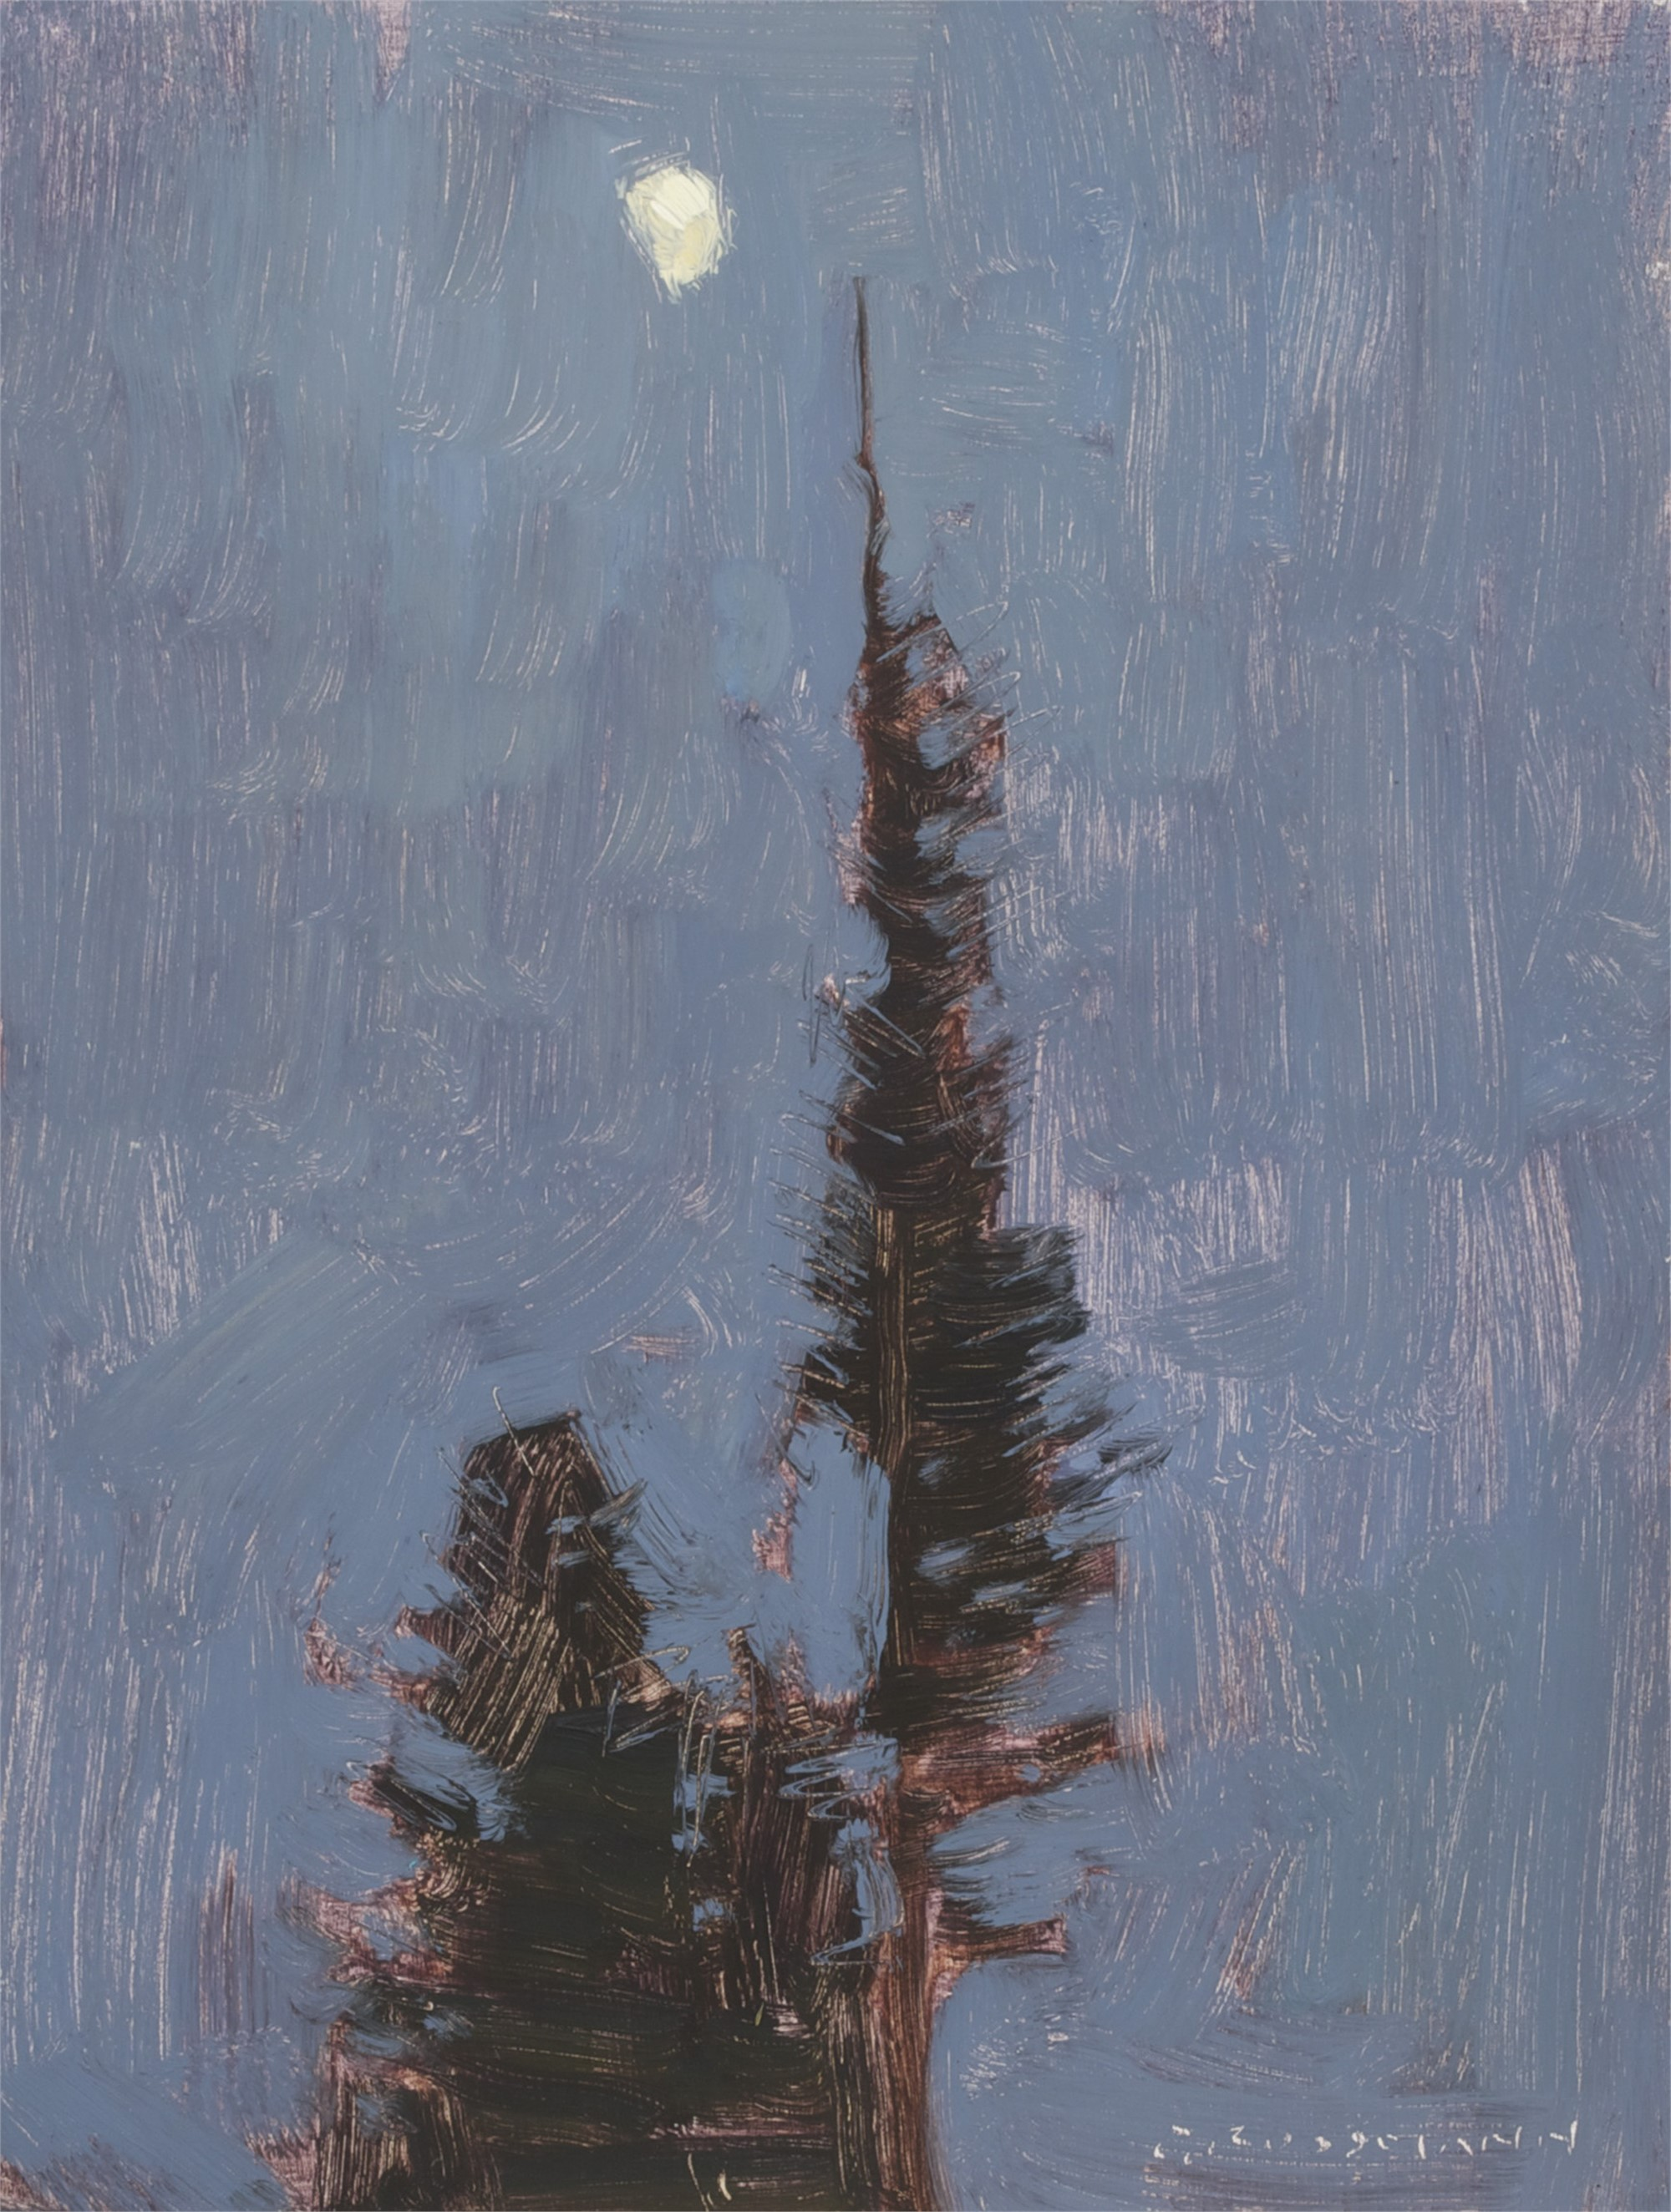 Waxing Moon and Night Pines by David Grossmann